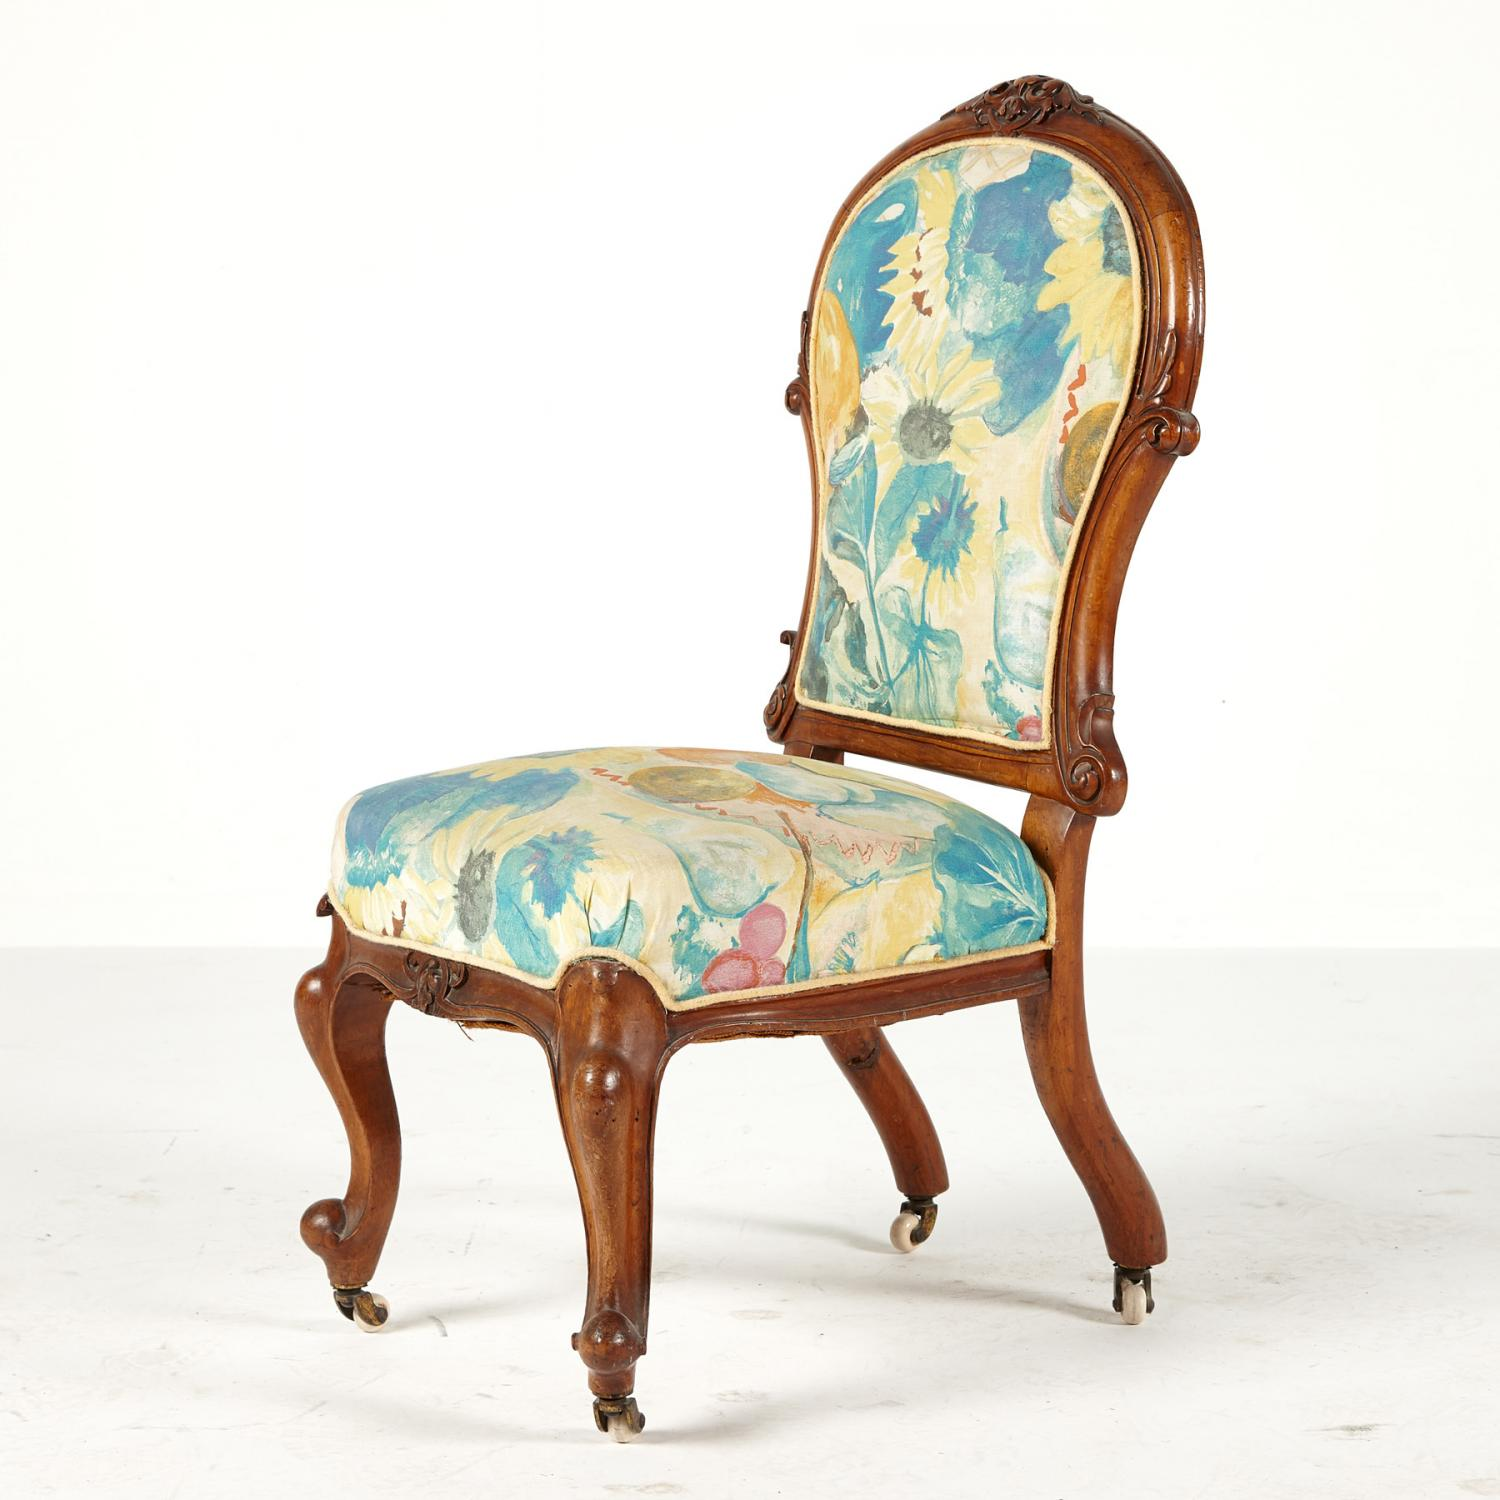 Lot 28 Of 236: A Victorian Slipper Chair